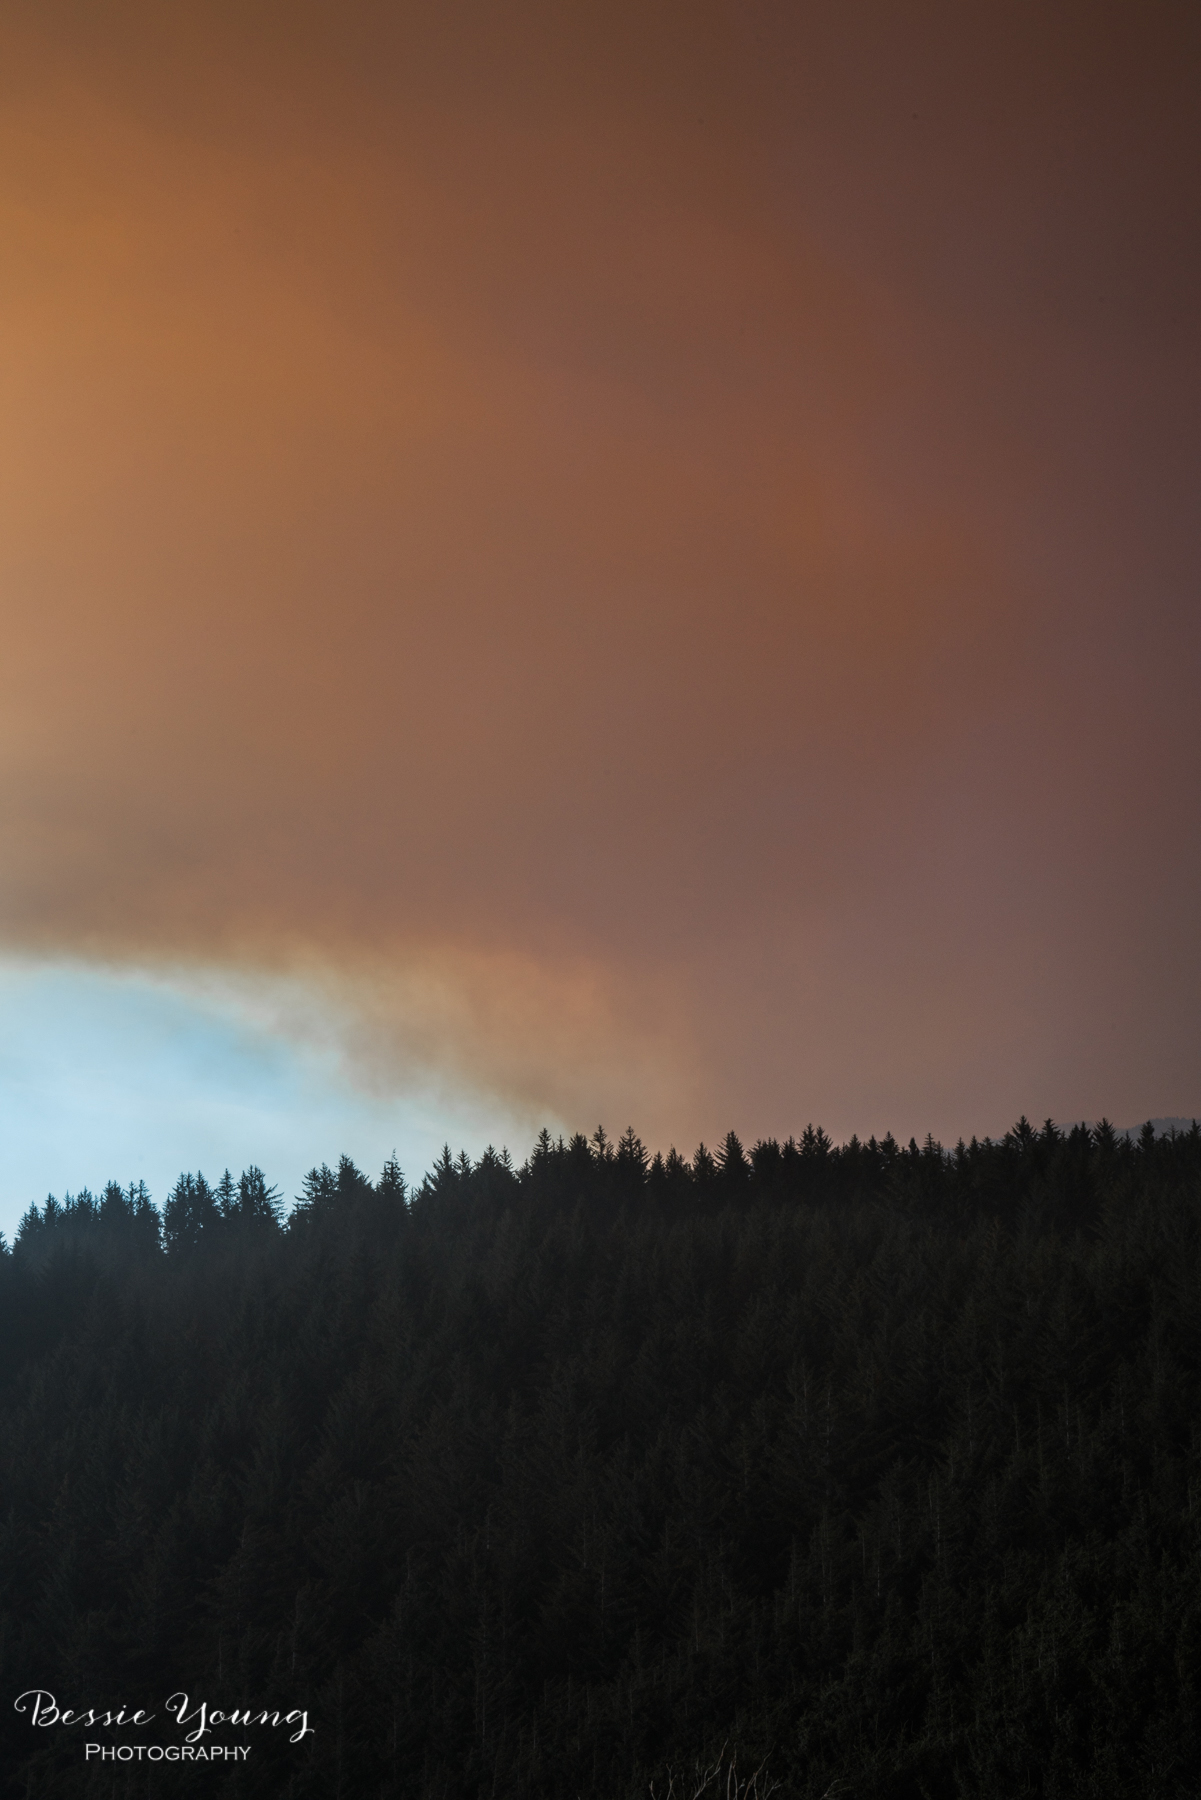 Chetco Bar Fire Brookings Oregon 2017 - Bessie Young Photography-17.jpg